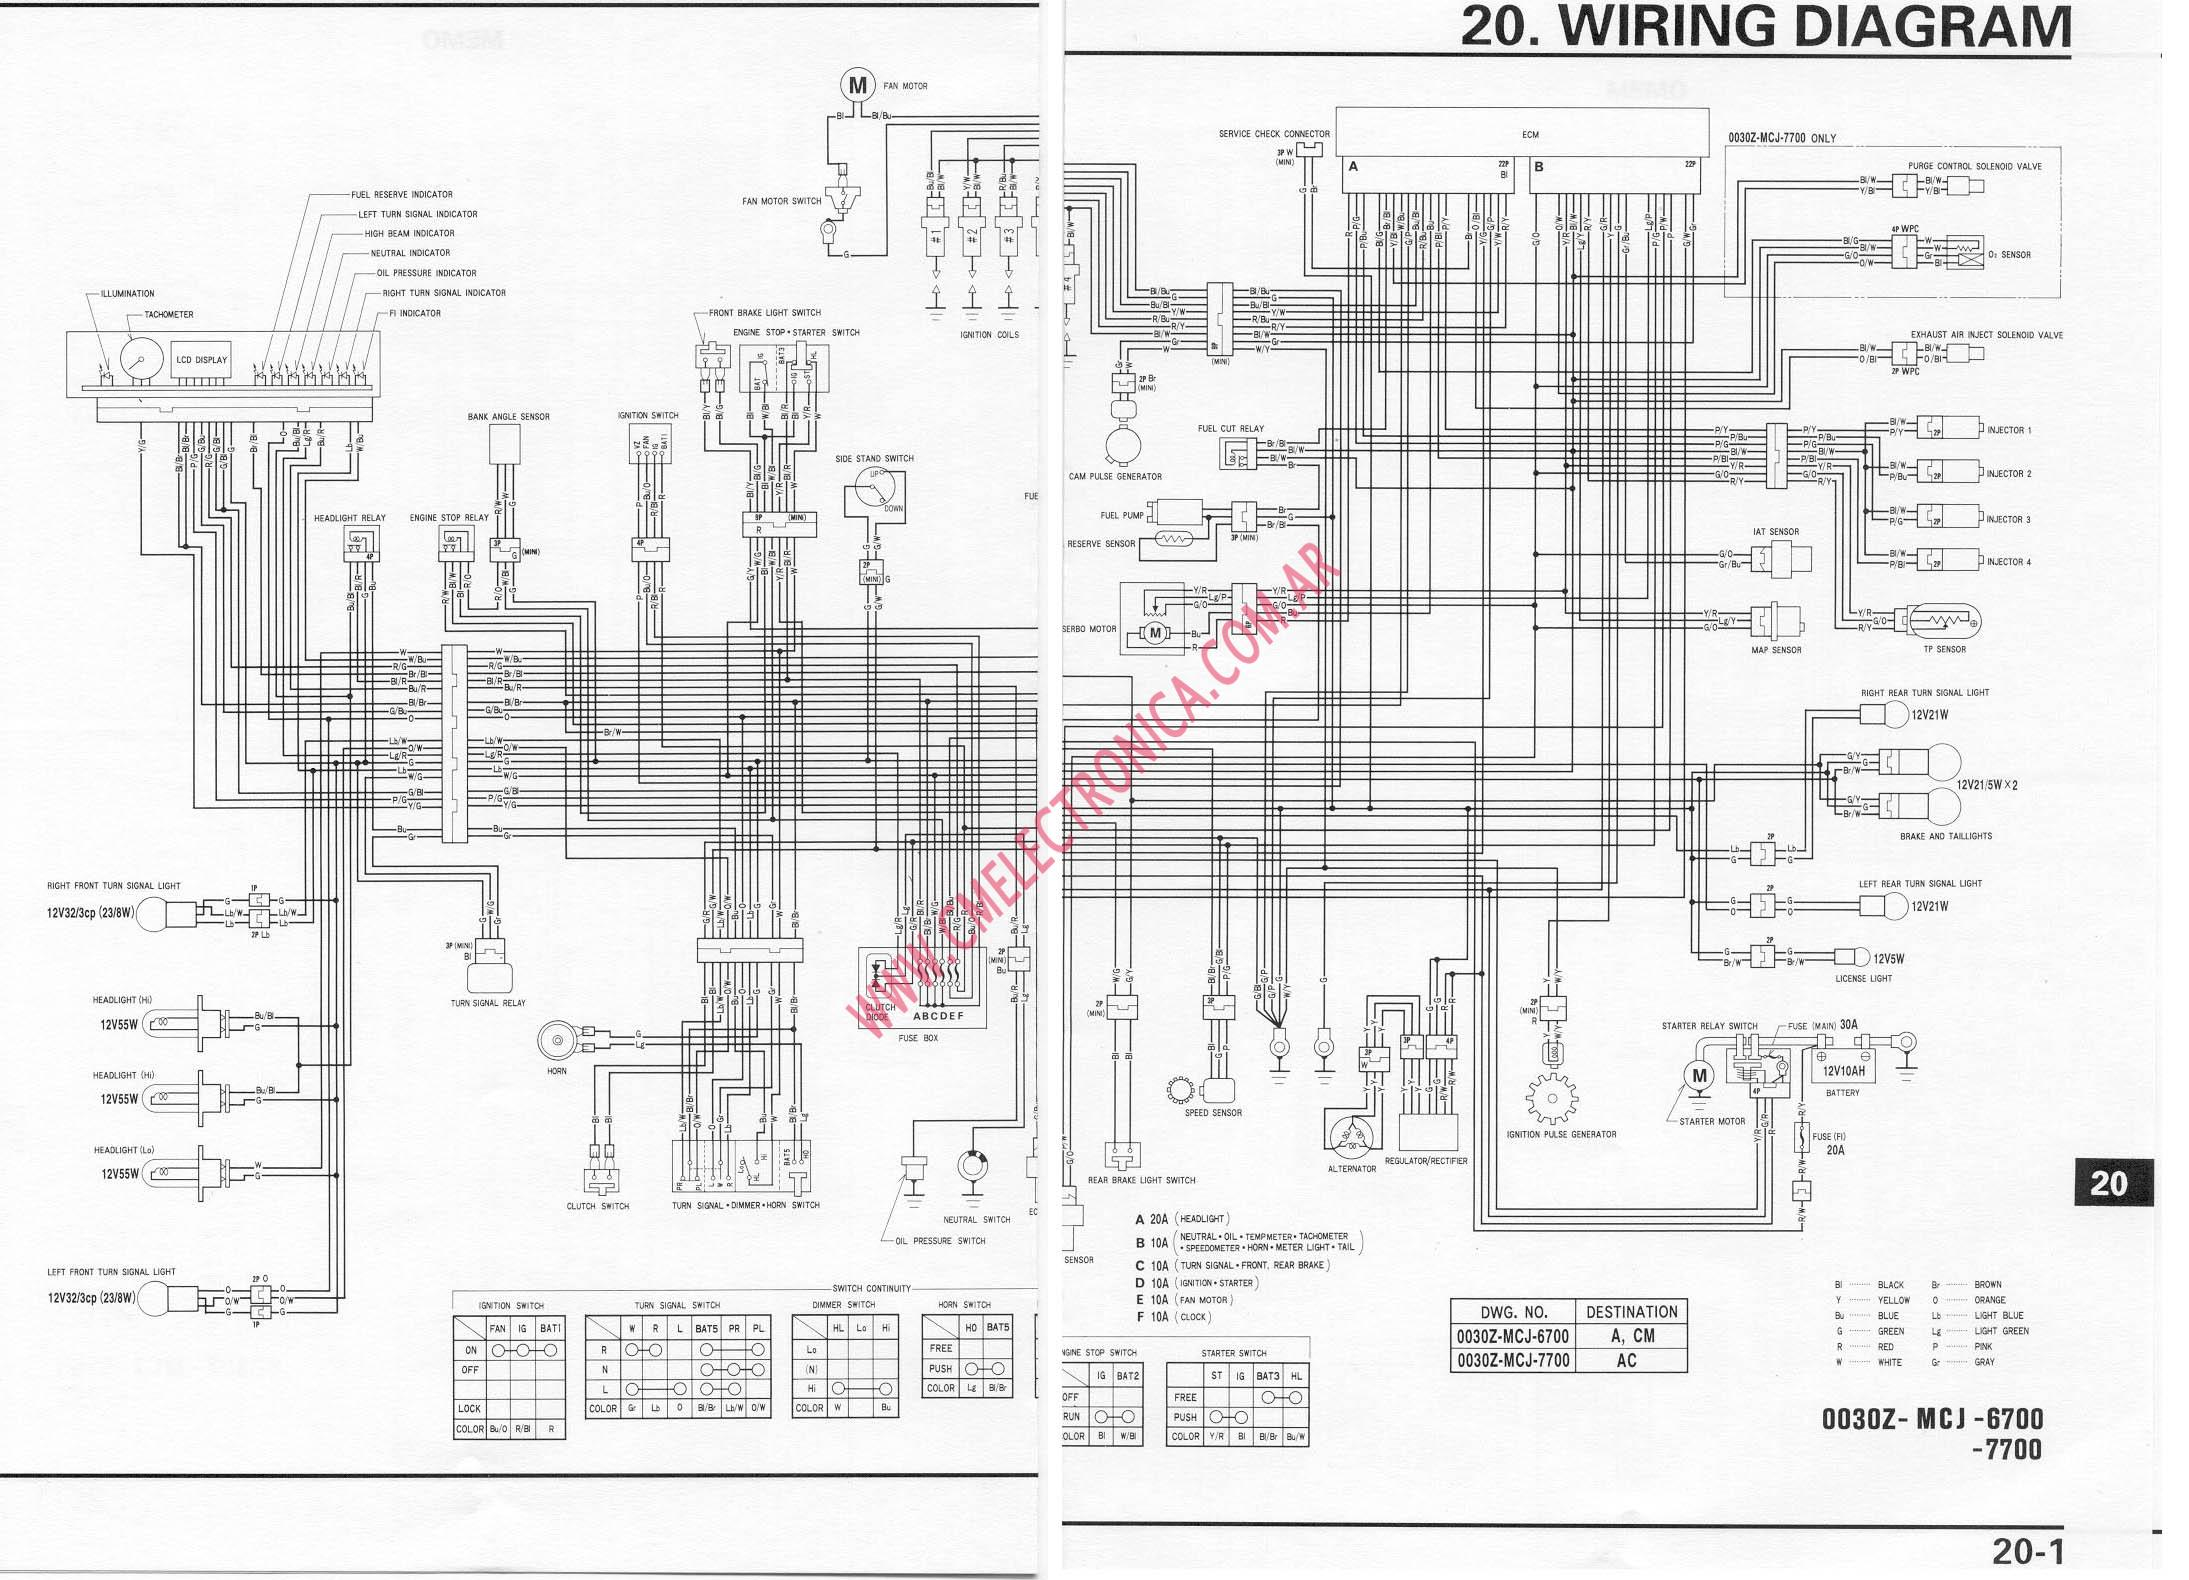 Wiring Diagram Cbr, Wiring, Free Engine Image For User